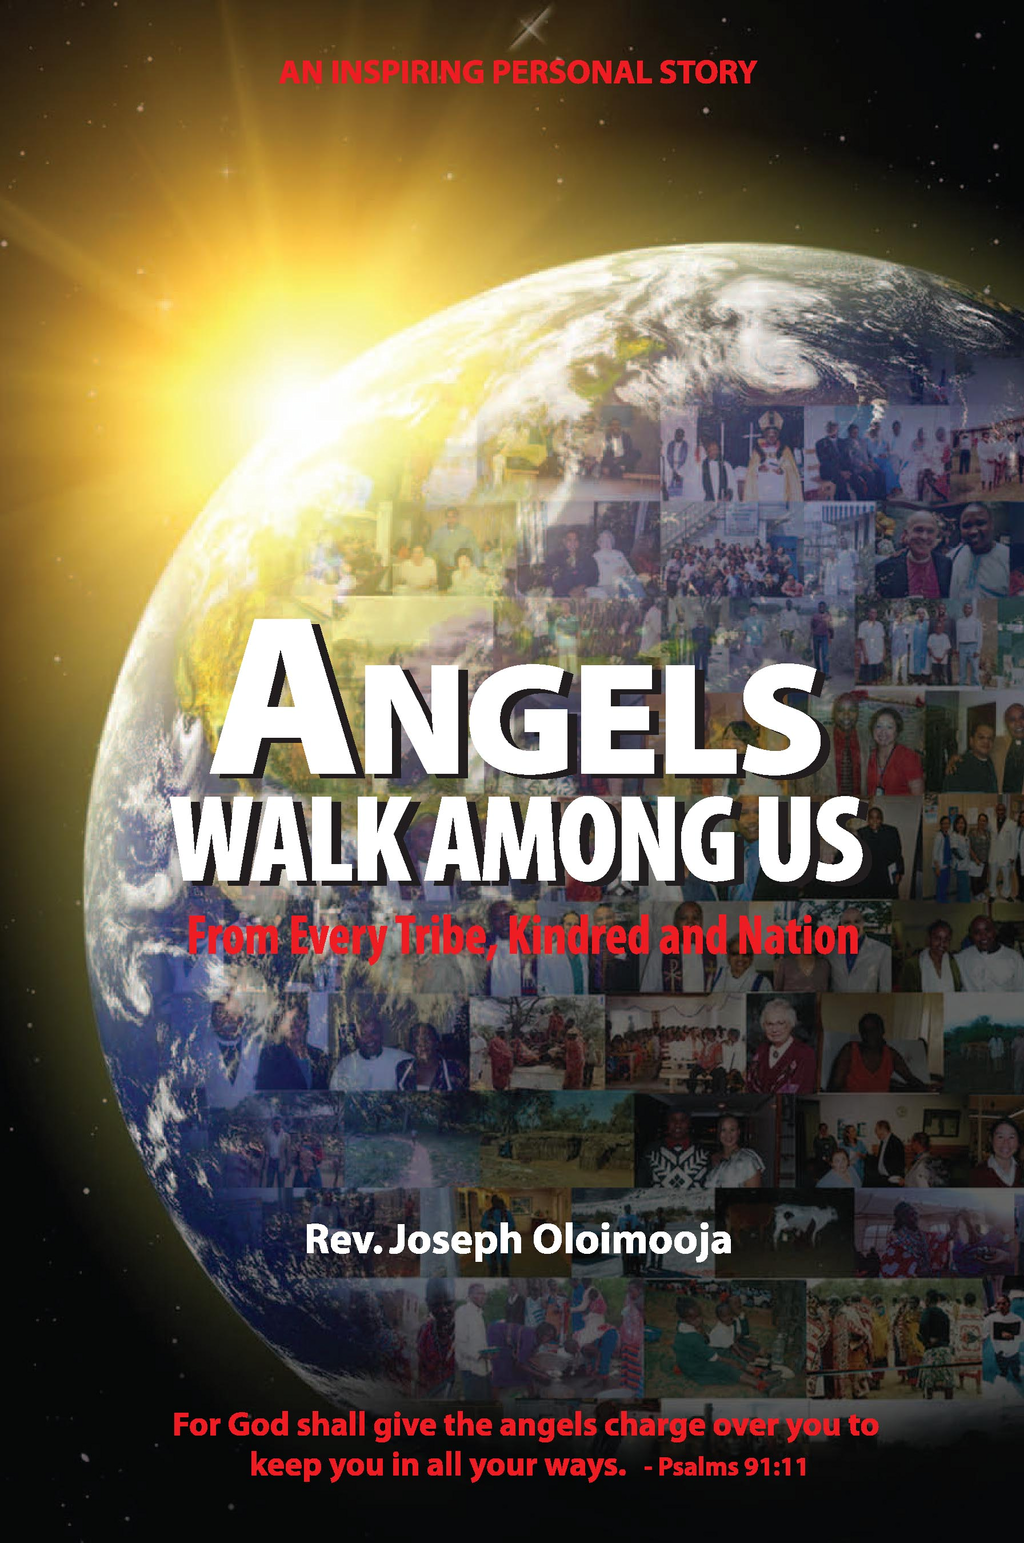 ANGELS WALK AMONG US: From Every Tribe, Kindred, and Nation By: Joseph Oloimooja